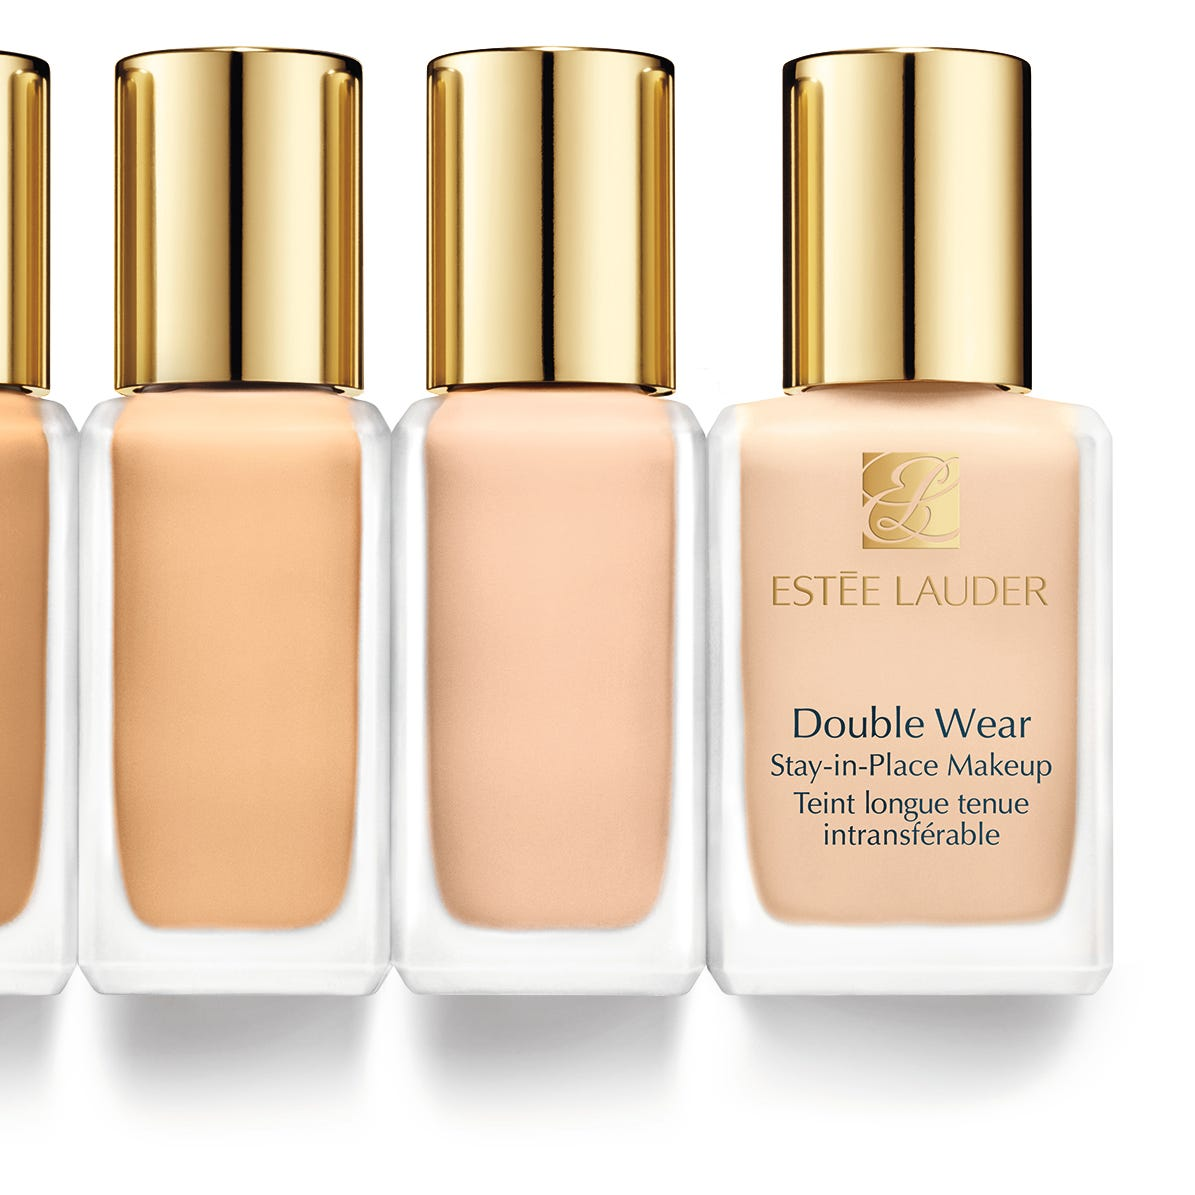 Estee Lauder's Double Wear Stay In Place Makeup